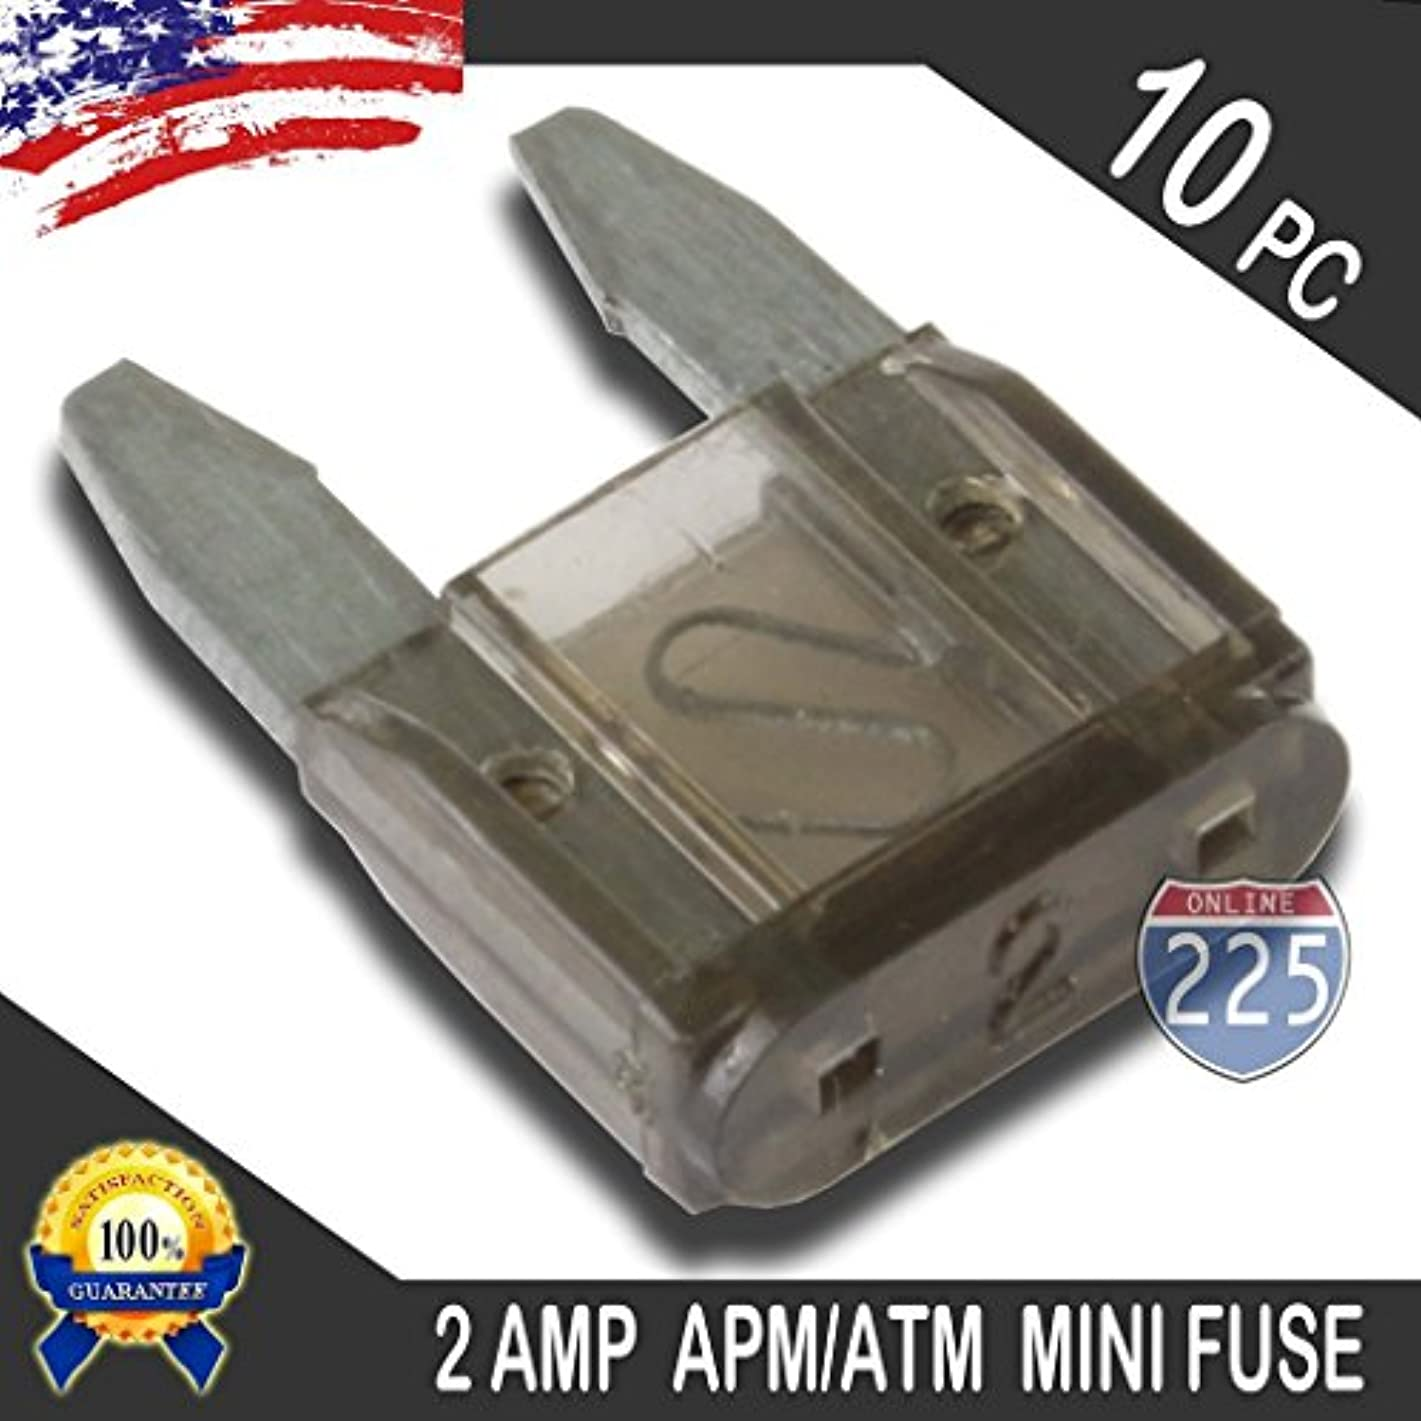 10 Pack 2 AMP APM/ATM 32V Mini Blade Style Fuses 2A Short Circuit Protection Car Fuse